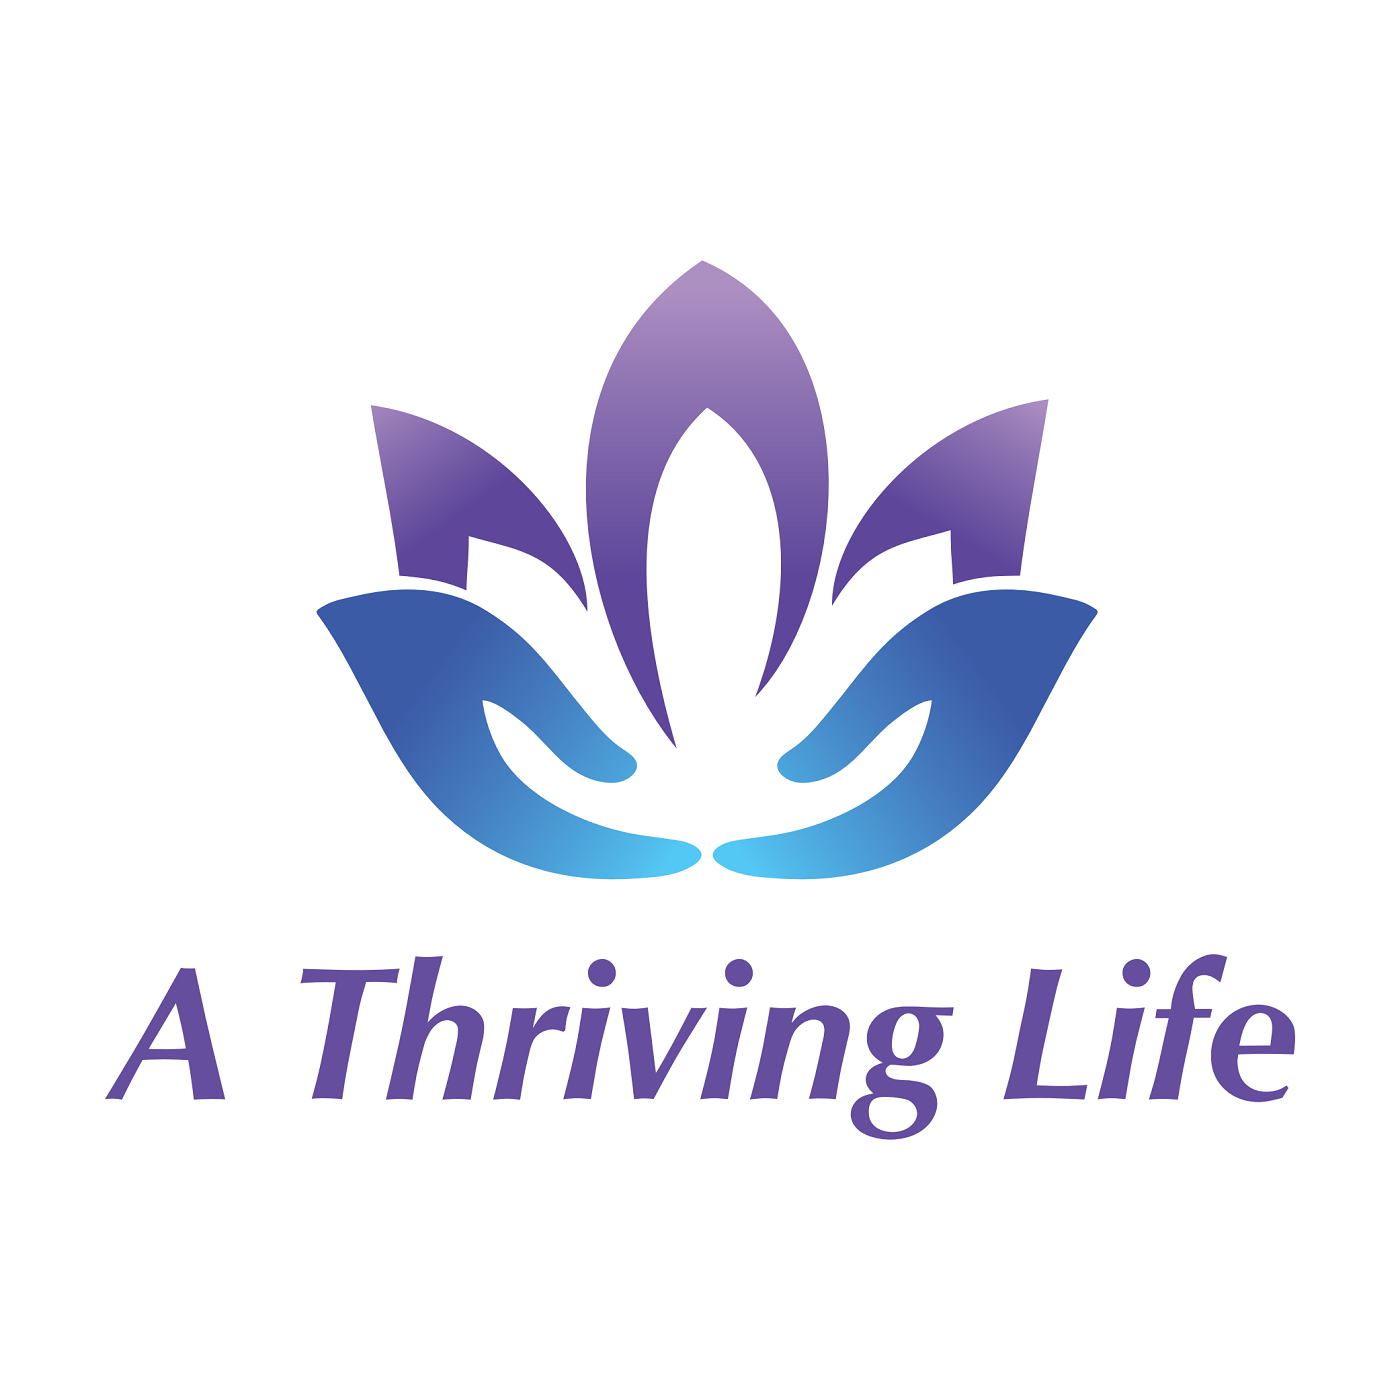 A Thriving Life for Caregivers - May 31, 2019